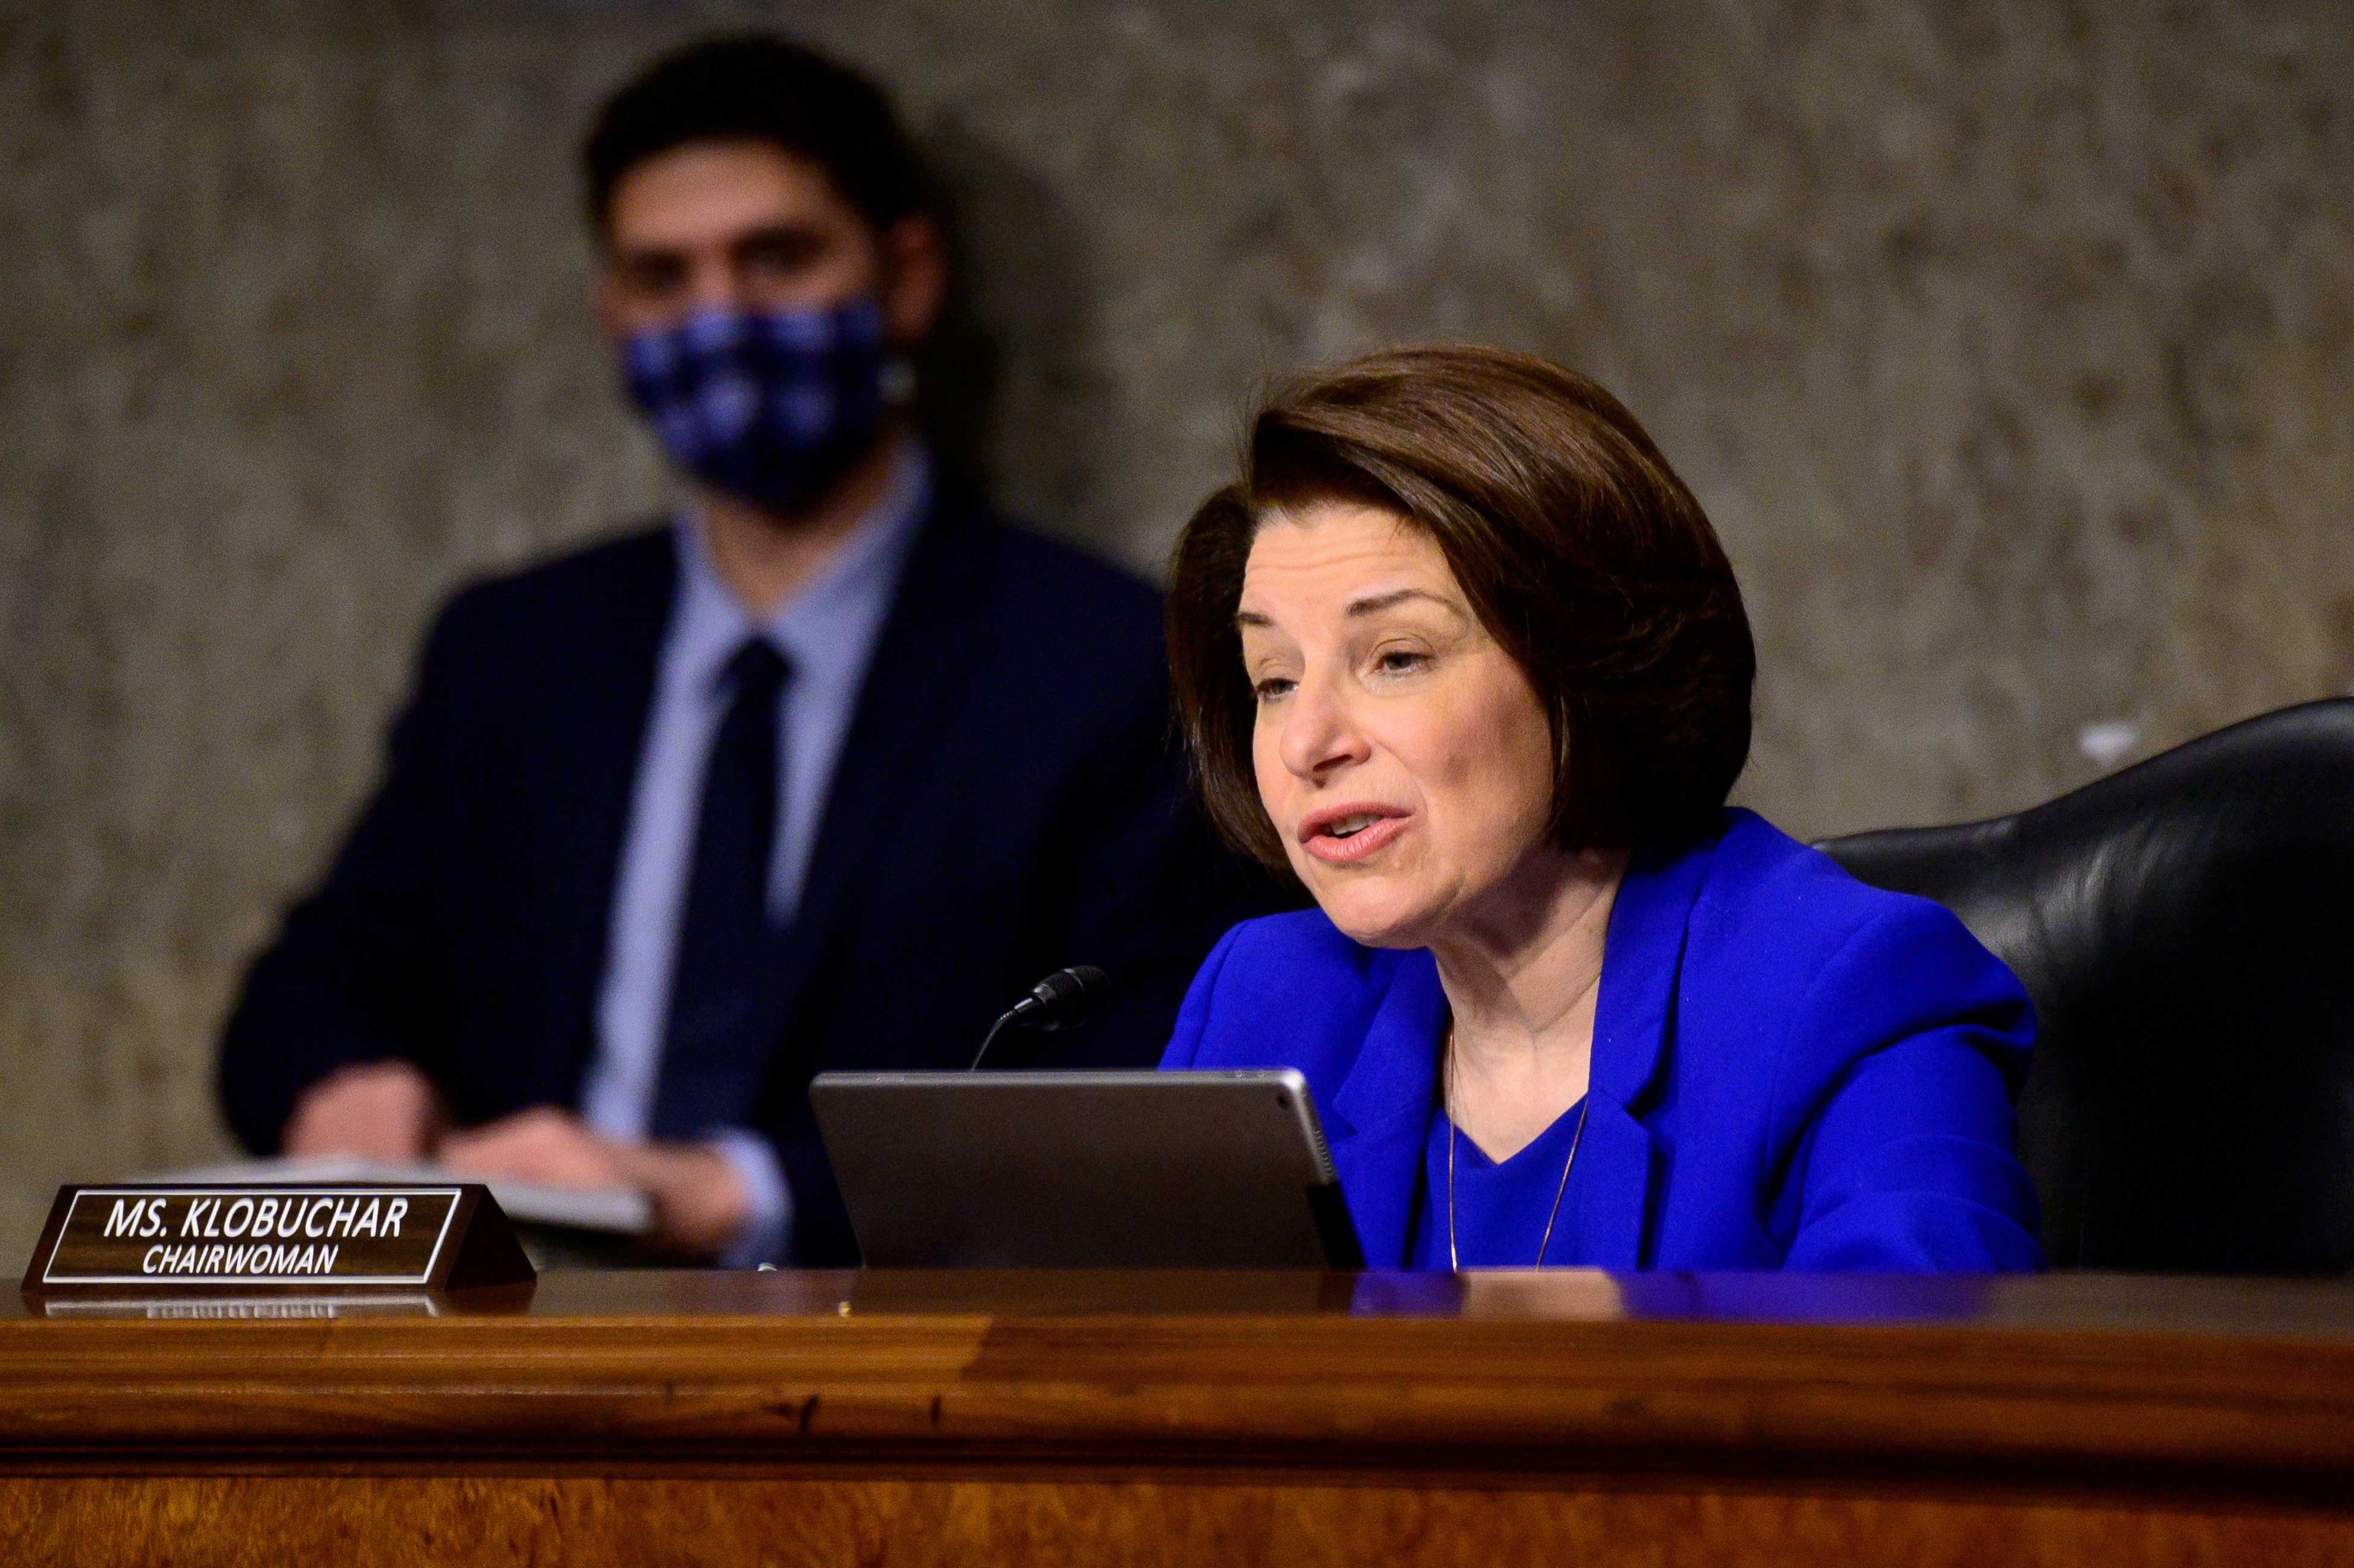 Chairwoman Amy Klobuchar, D-Minn., speaks during a Senate Homeland Security and Governmental Affairs and Senate Rules and Administration committees joint hearing on Capitol Hill, Washington, U.S. February 23, 2021, Erin Scott/Pool via REUTERS